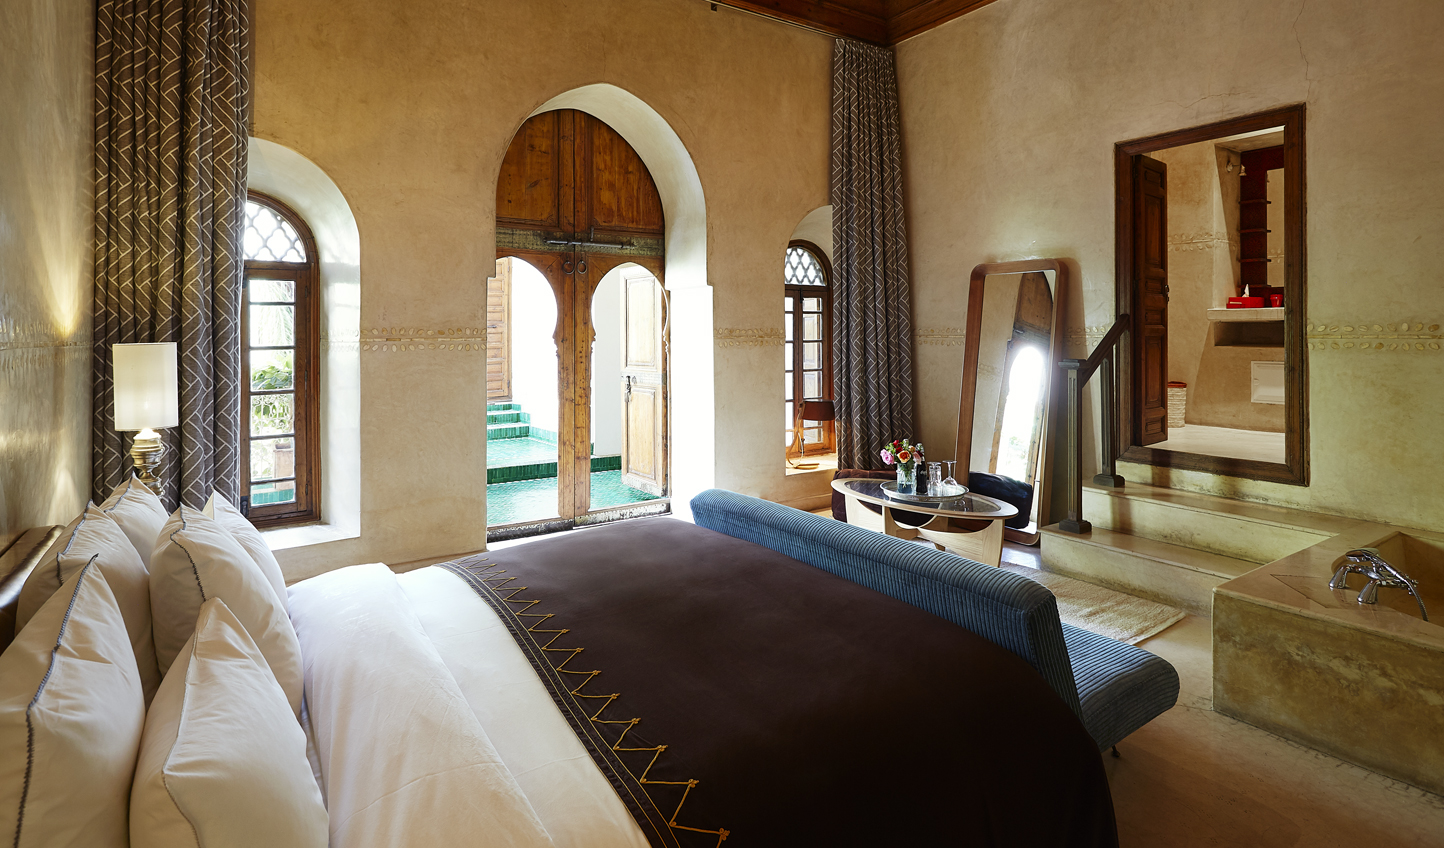 Settle into your spacious Riad